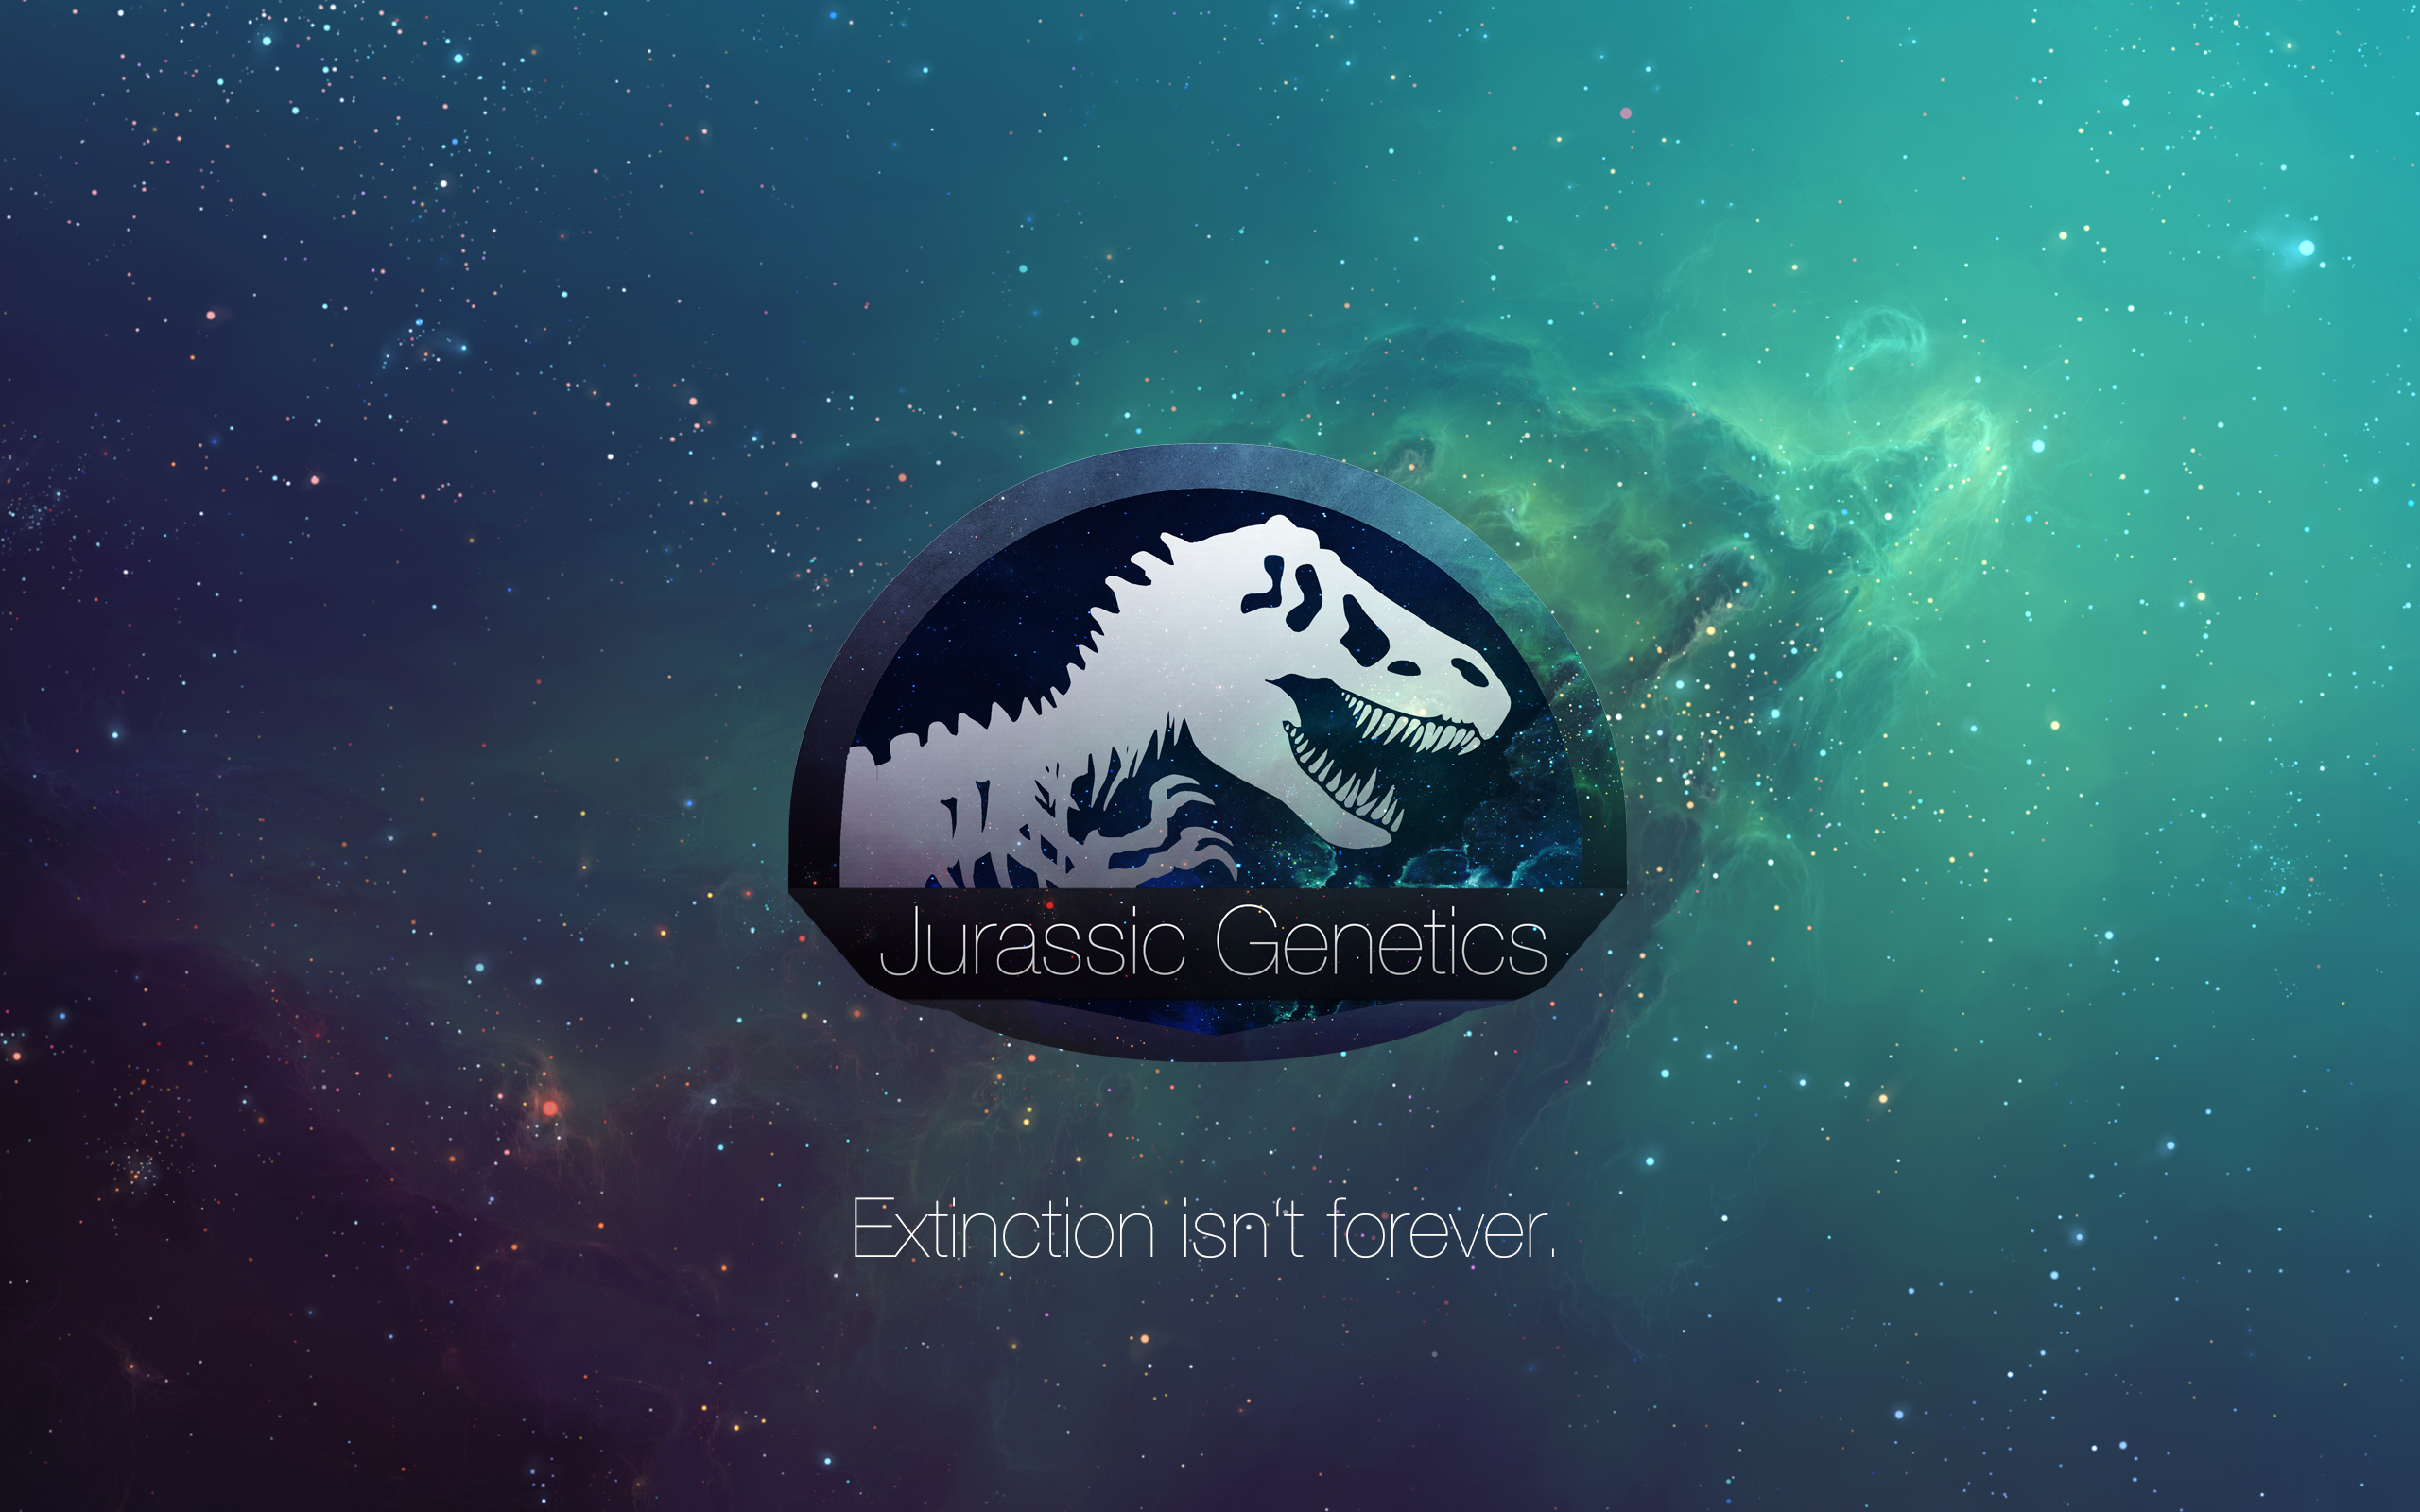 Kicking It with the Team of Jurassic Genetics - Extinction Isn't Forever